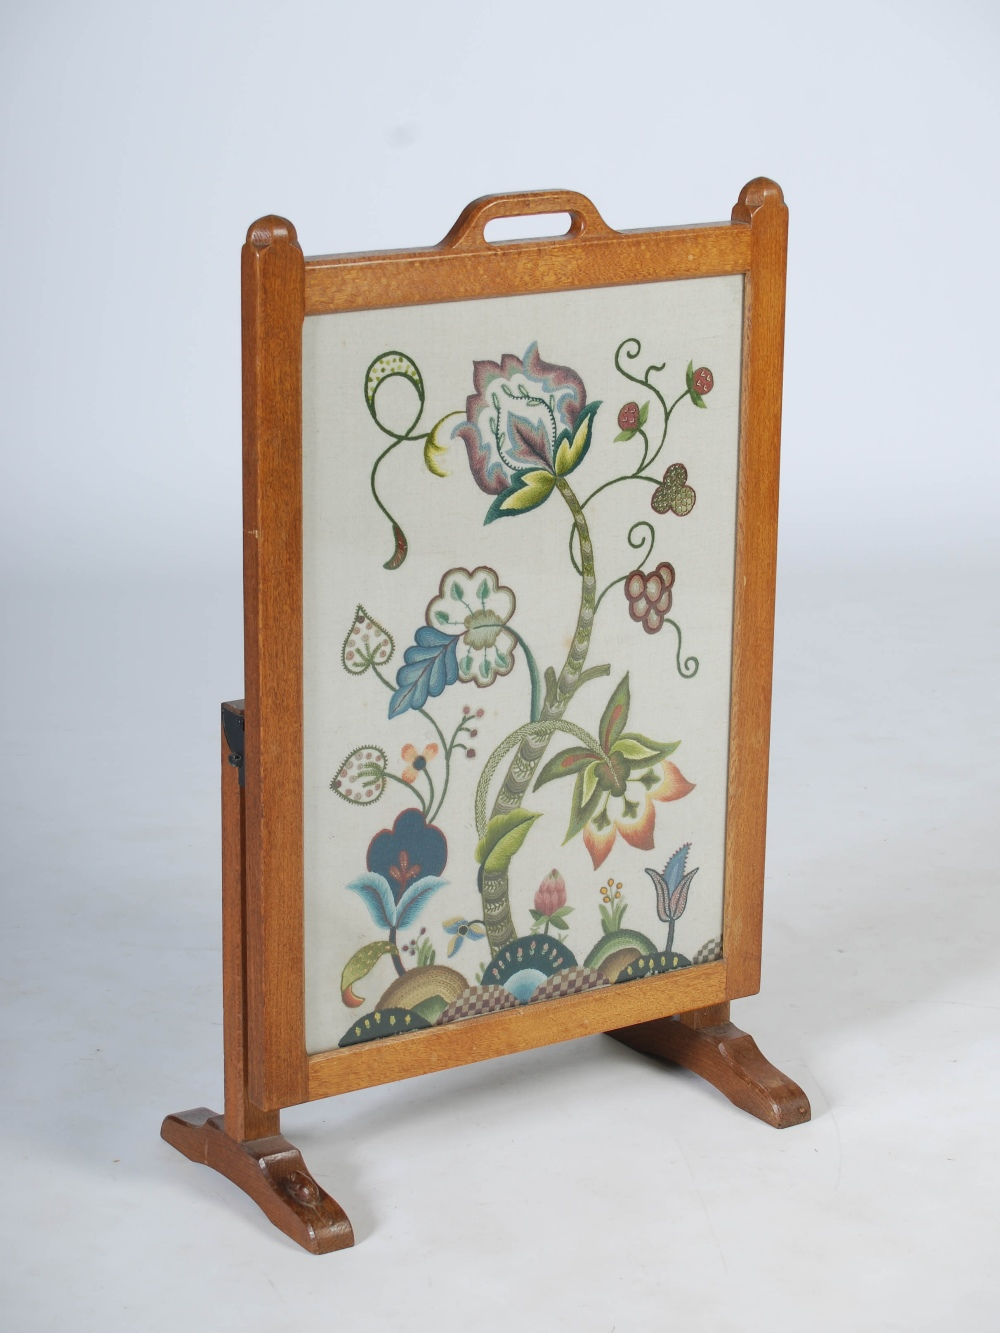 Lot 113 - A carved oak fire screen by Beaverman, the hinged rectangular screen with needlework upholstered